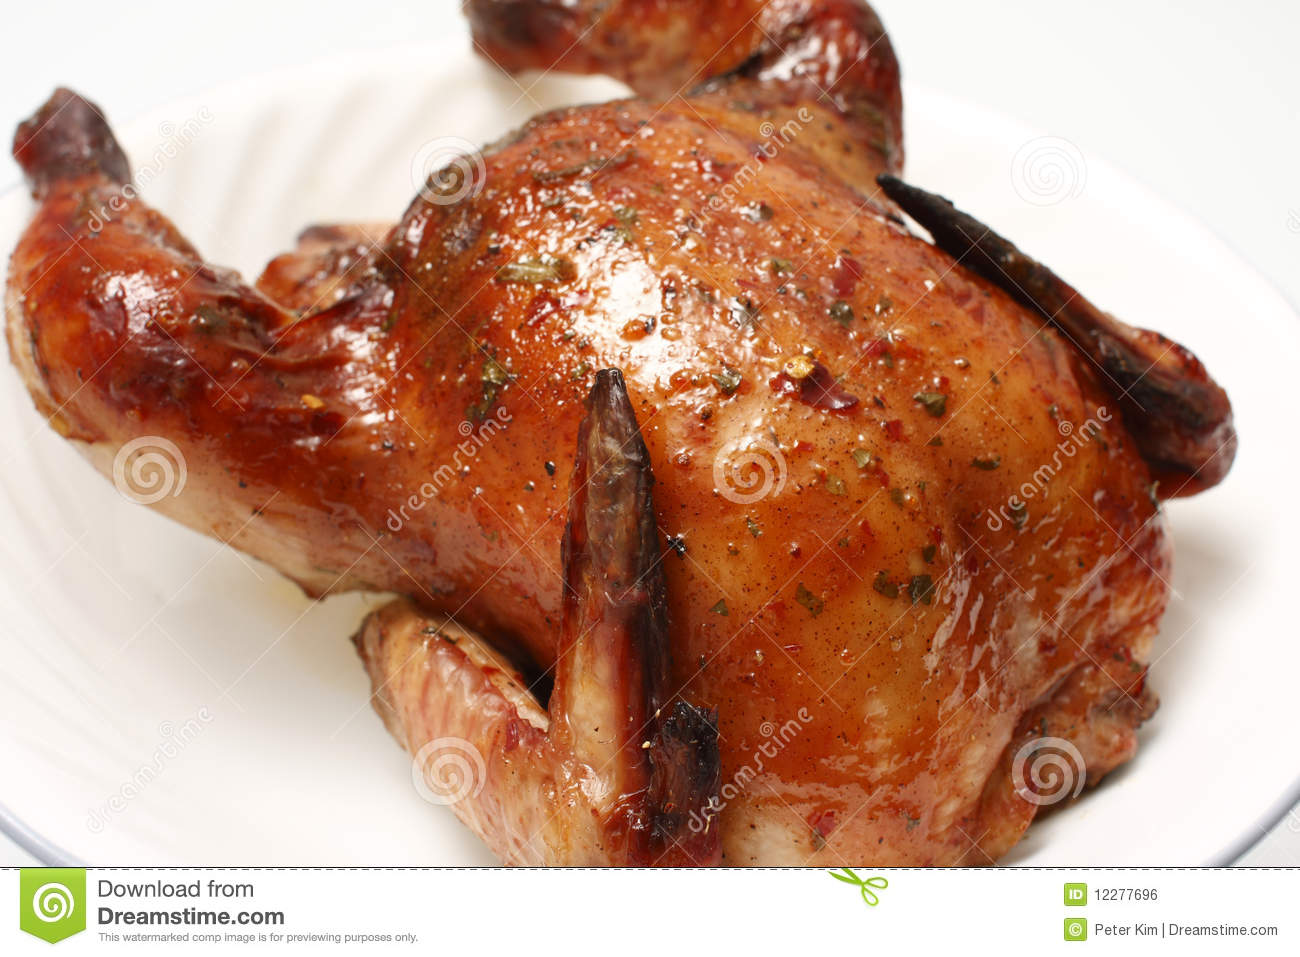 Baked Cornish game hen